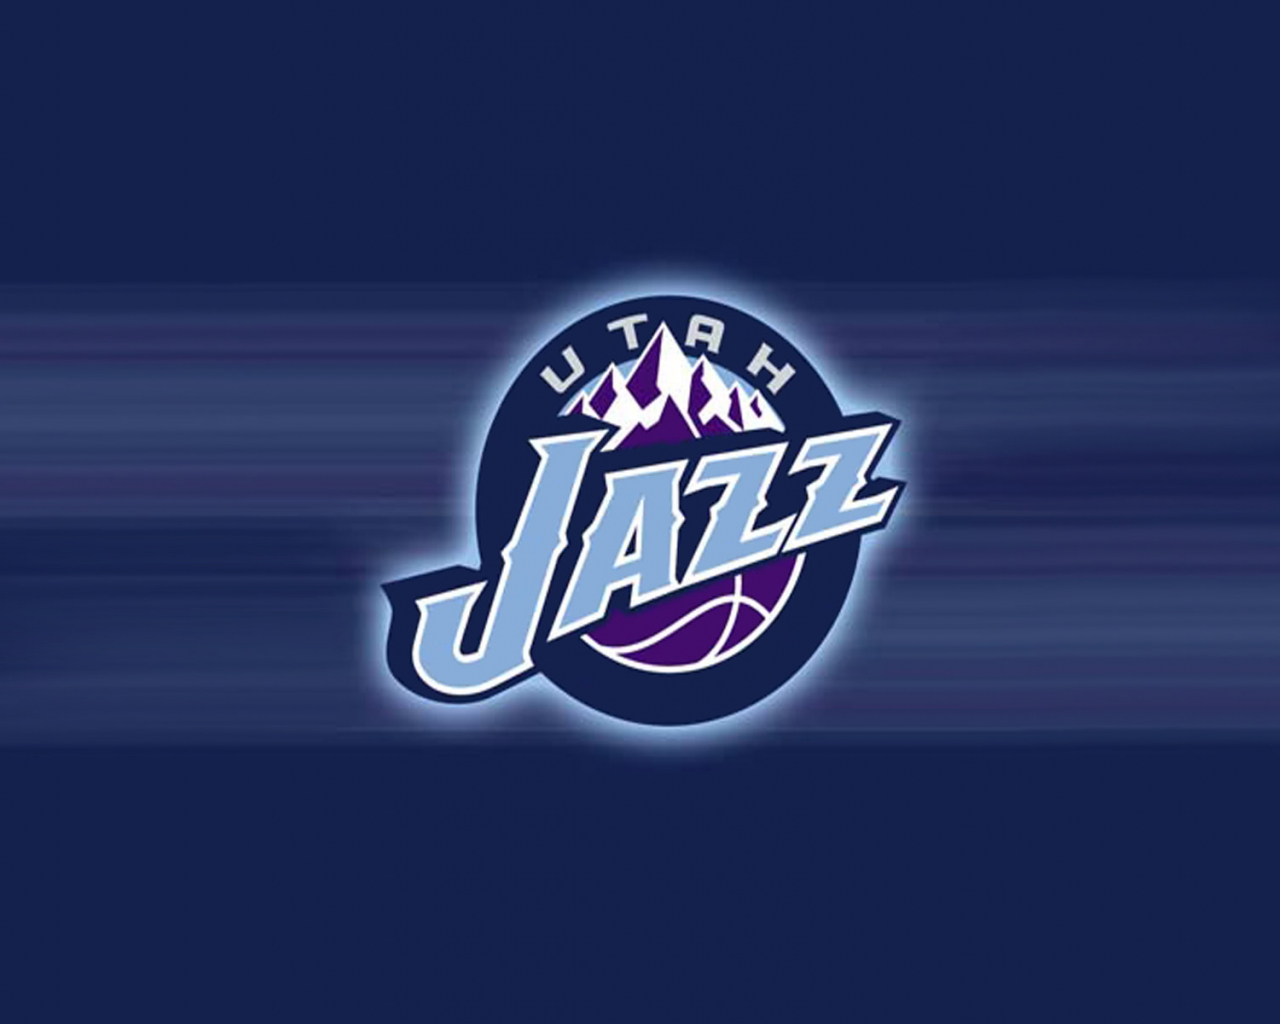 Free download Jazz wallpapers Jazz background 1600x1200 for